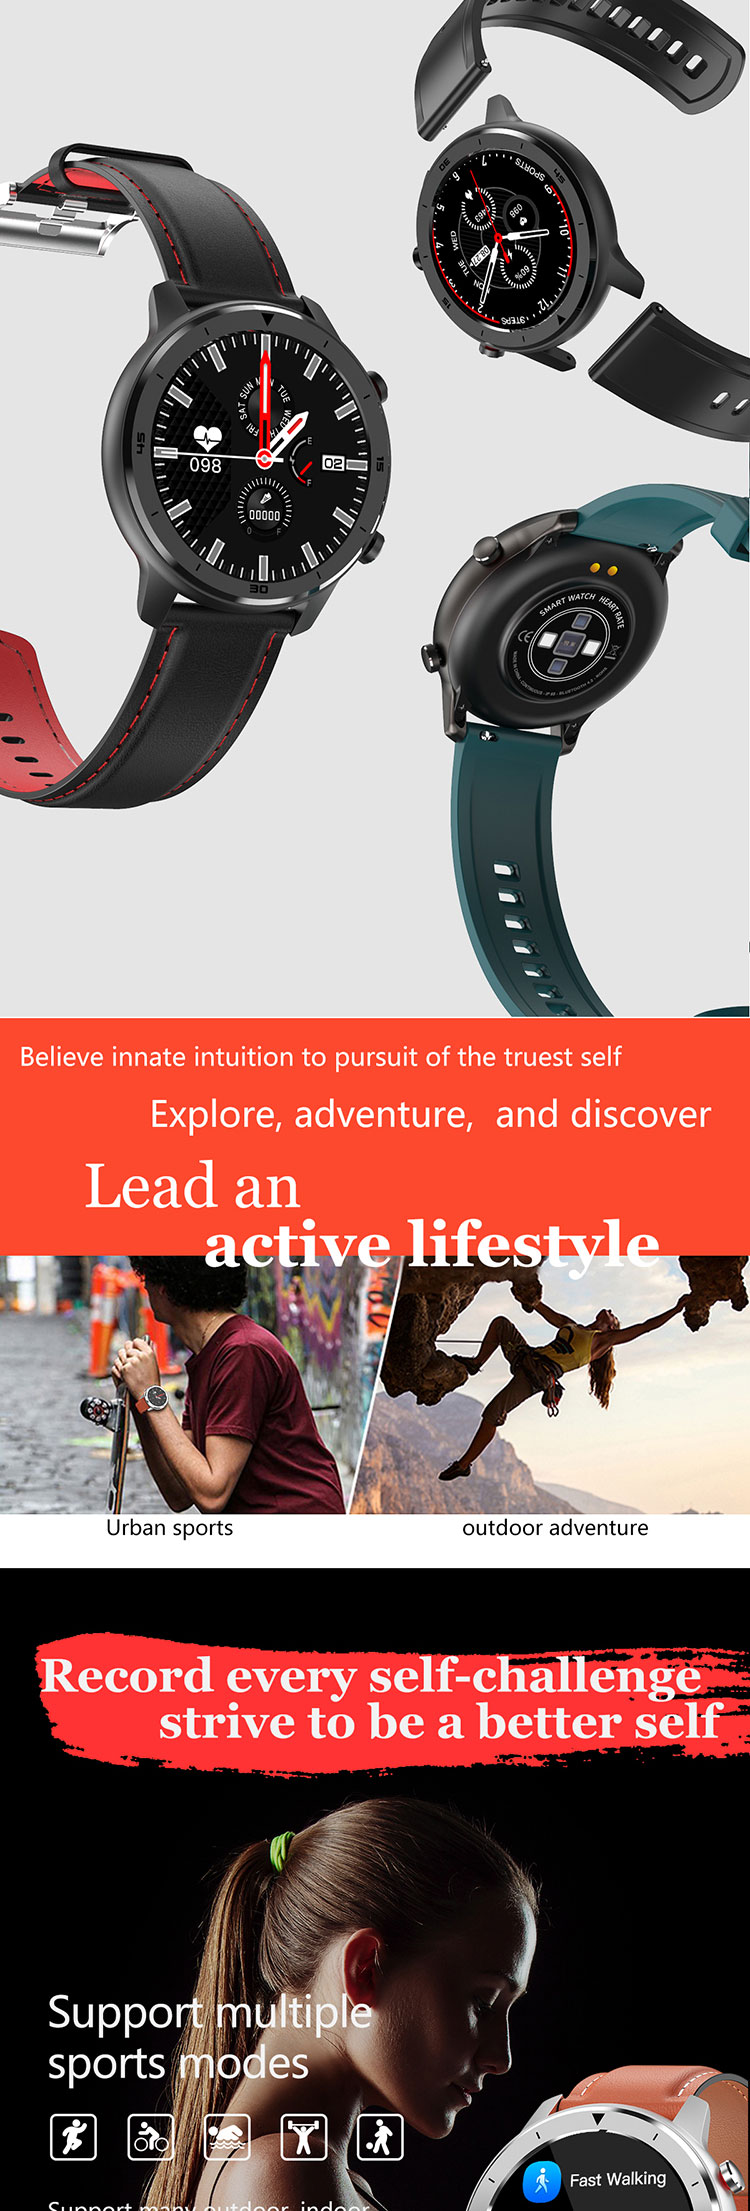 2020 IP68 Waterproof Smartwatch Full Touch Wearfit Heart Rate Monitor Round Fitness Sport Smart Watch DT78 with Multiple Strap